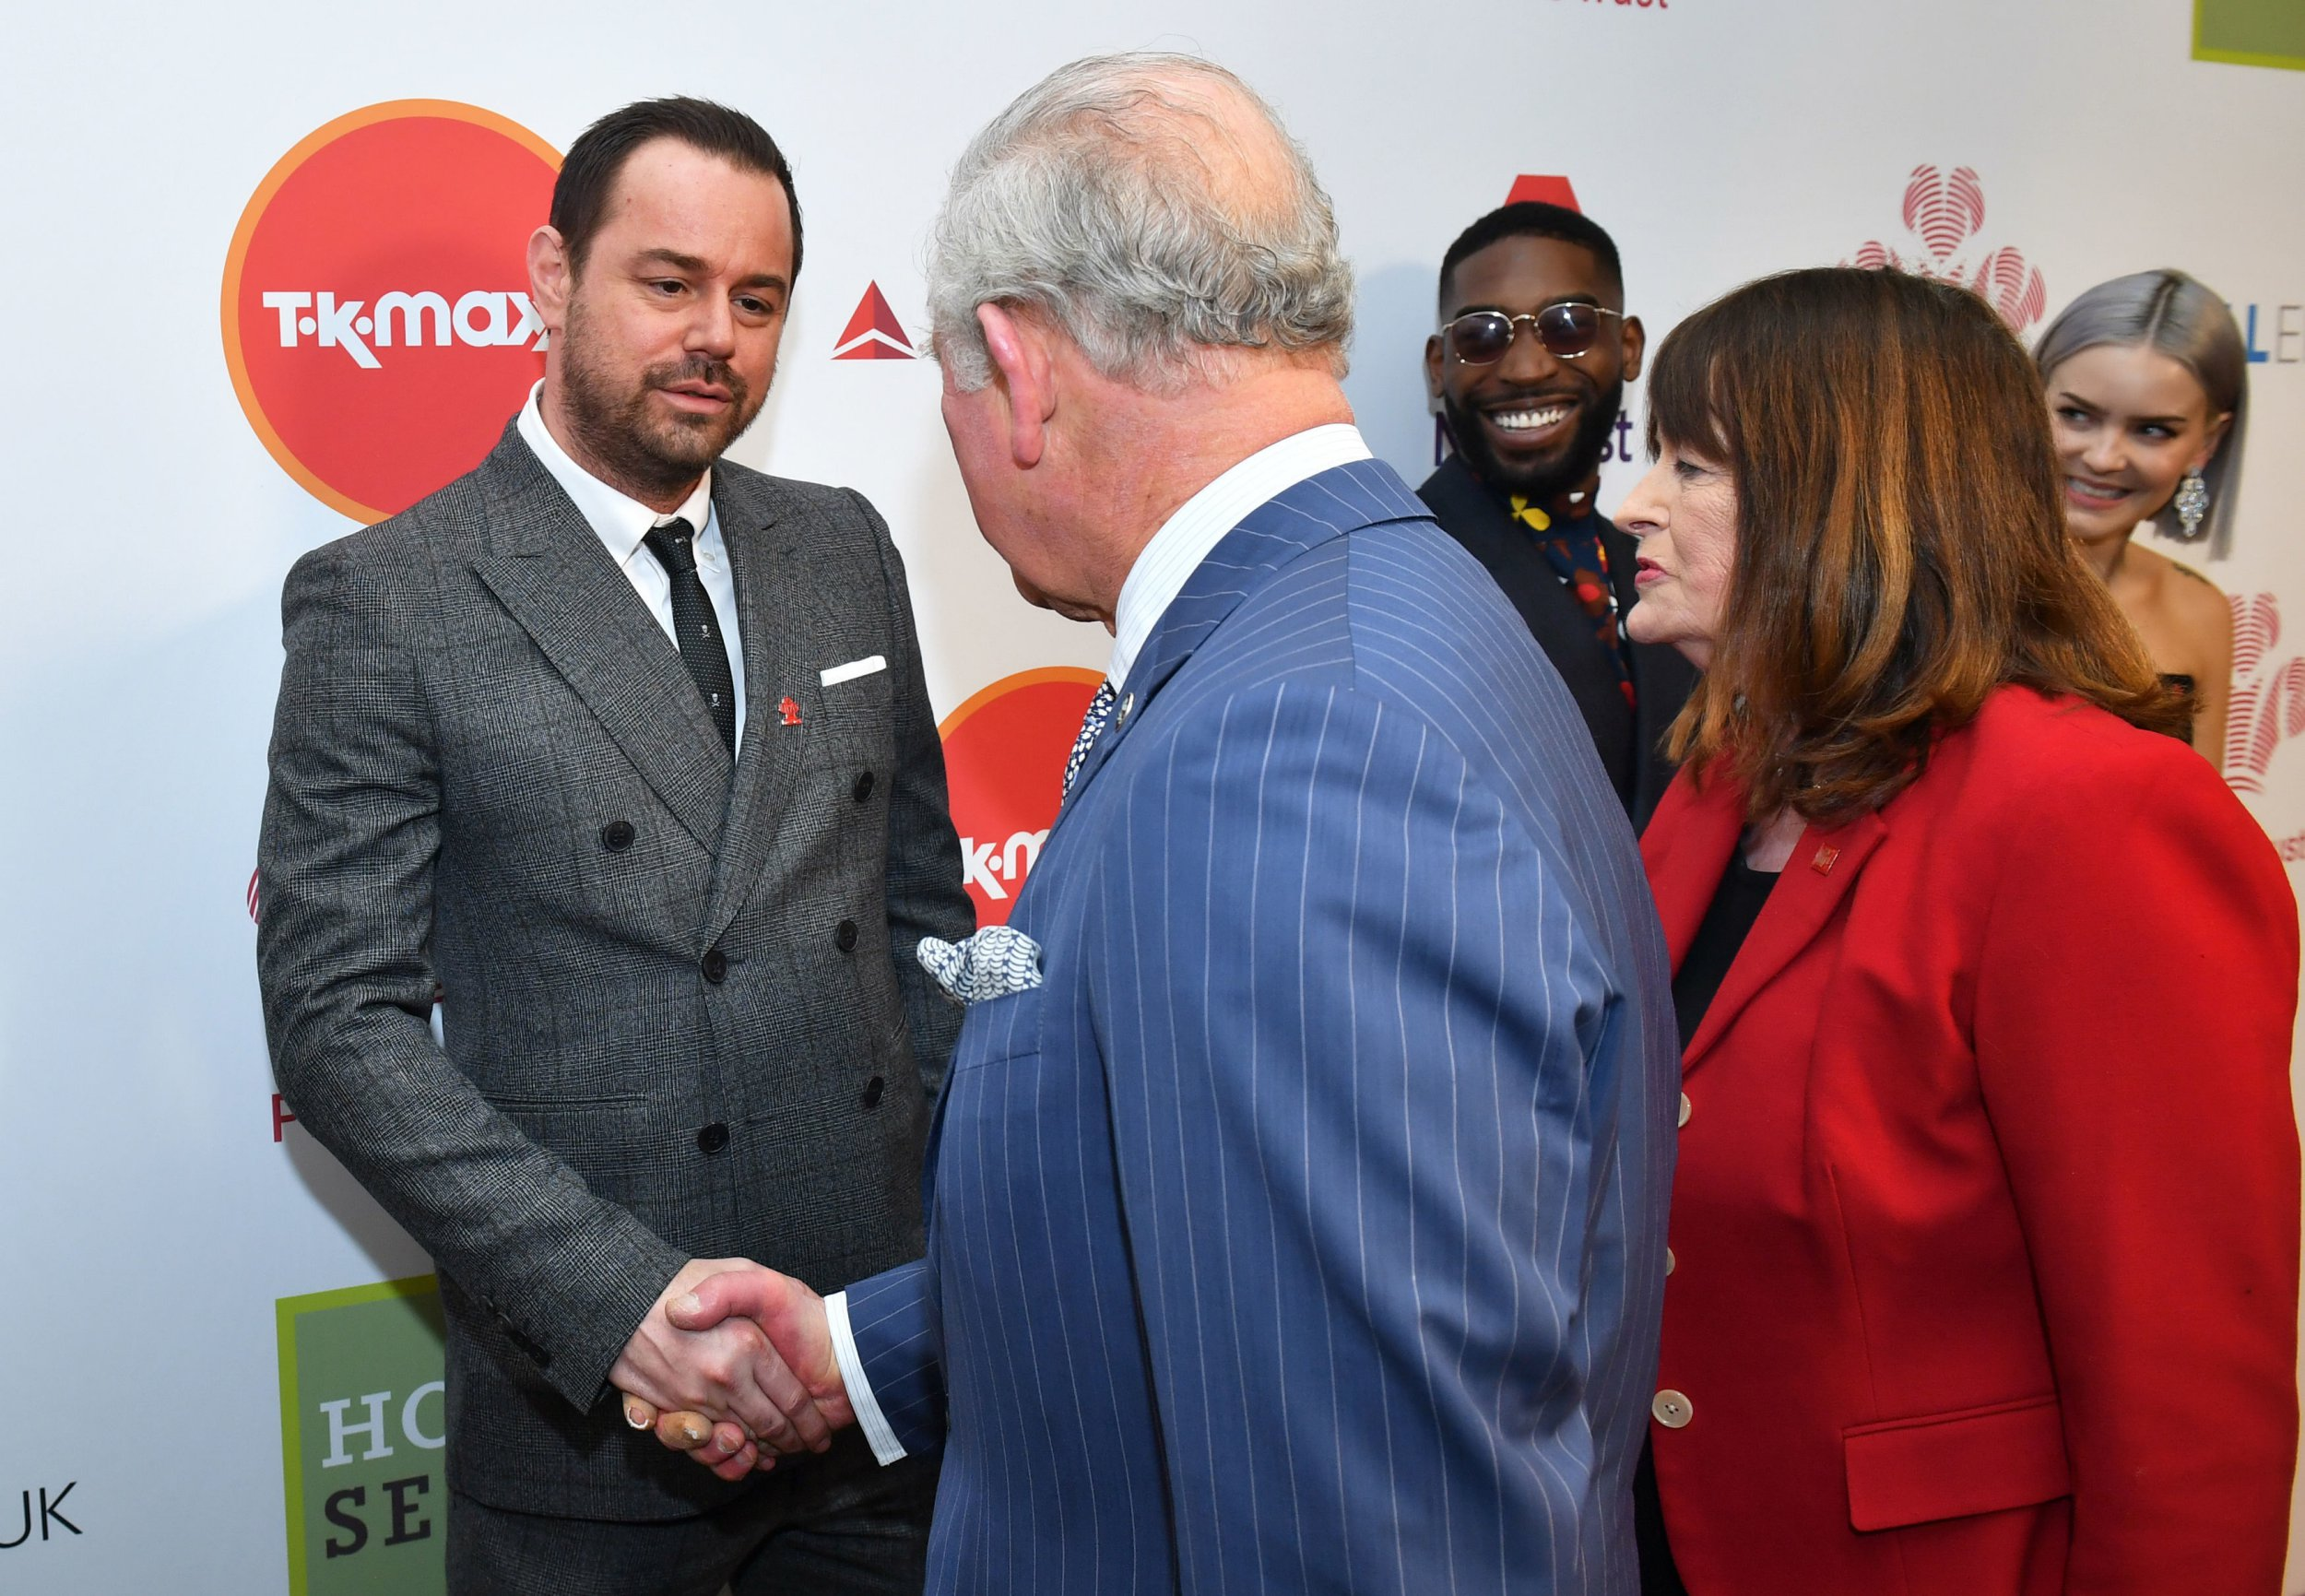 EastEnders star Danny Dyer meets 'cousin' Prince Charles and reveals they're 'related'